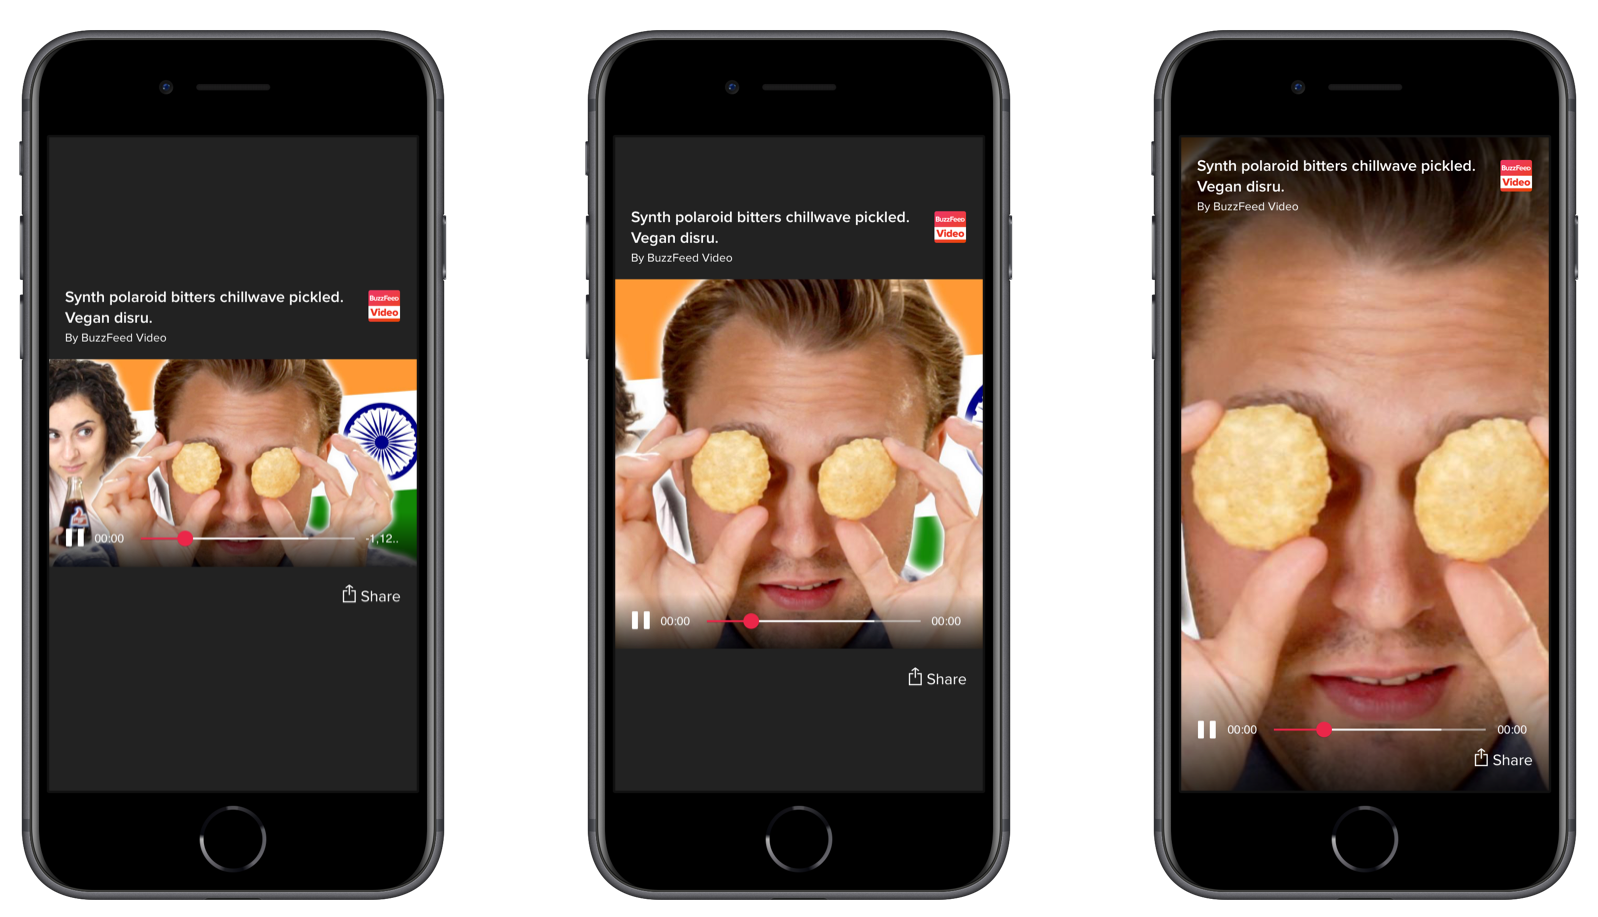 BuzzFeed native video player to support various aspect ratios and viewing mode